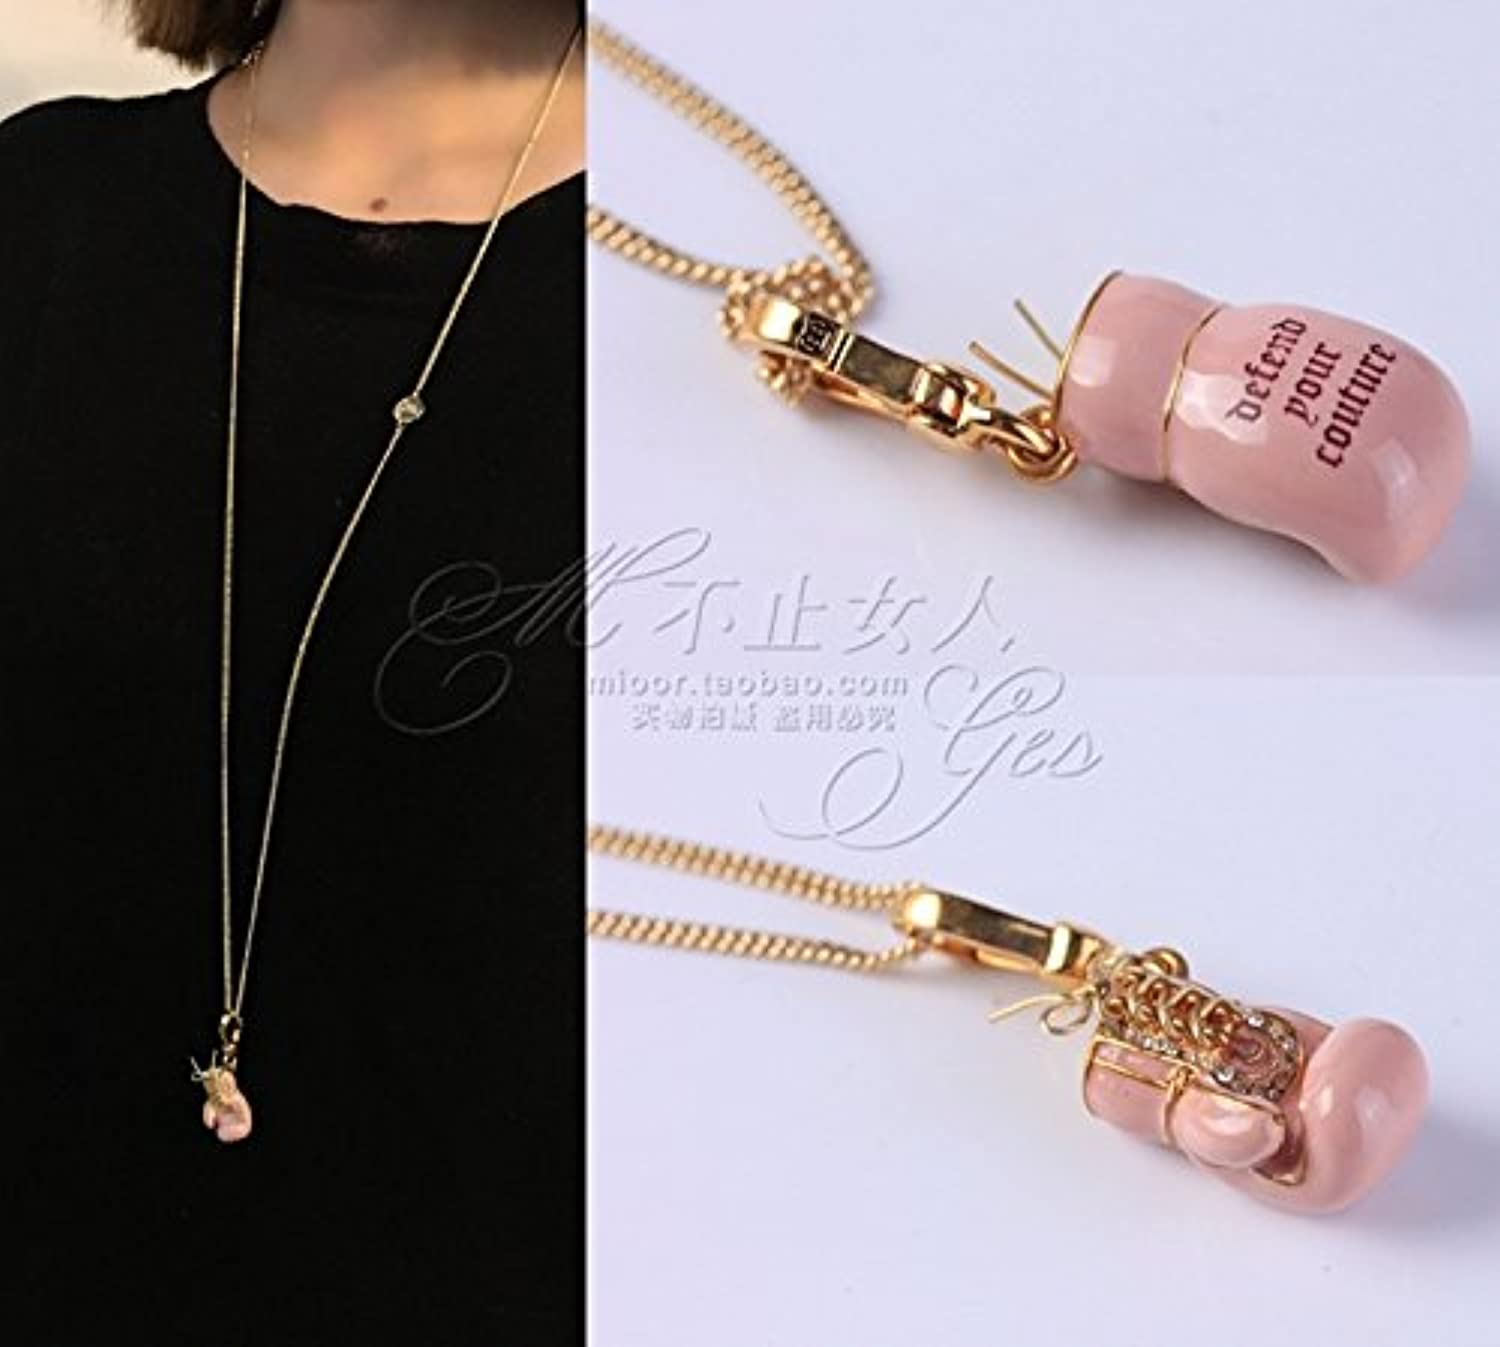 Remember Eating a Small Diamond Fenquan Cute Pink Boxing Set Long Necklace Pendant Sweater Chain Fashion by Age